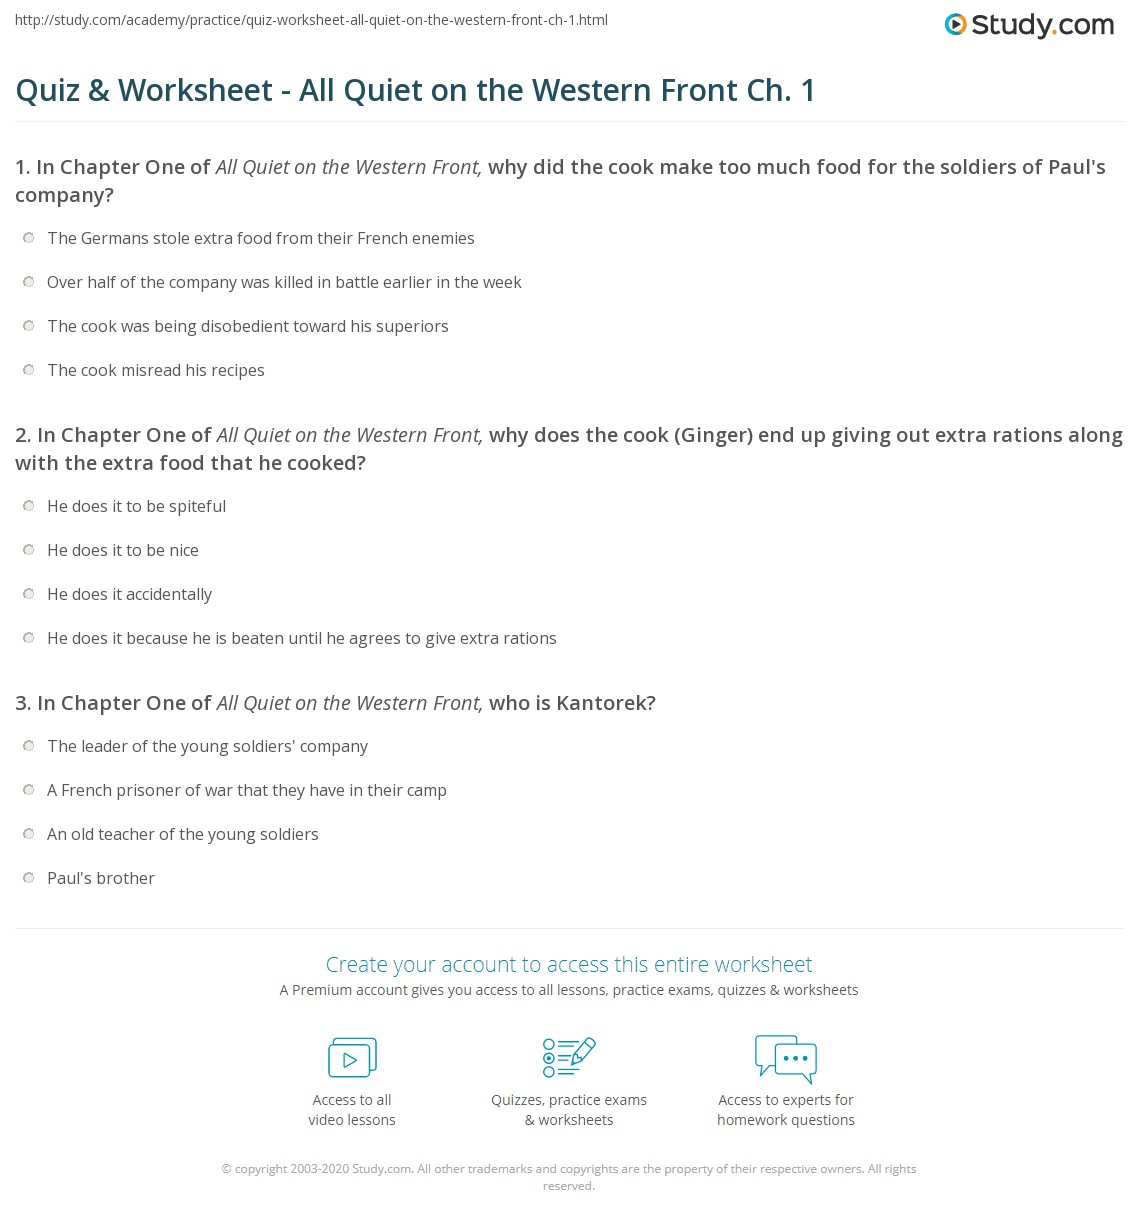 all quiet on the western front worksheet  quiz worksheet all quiet on the western front ch 1 study com